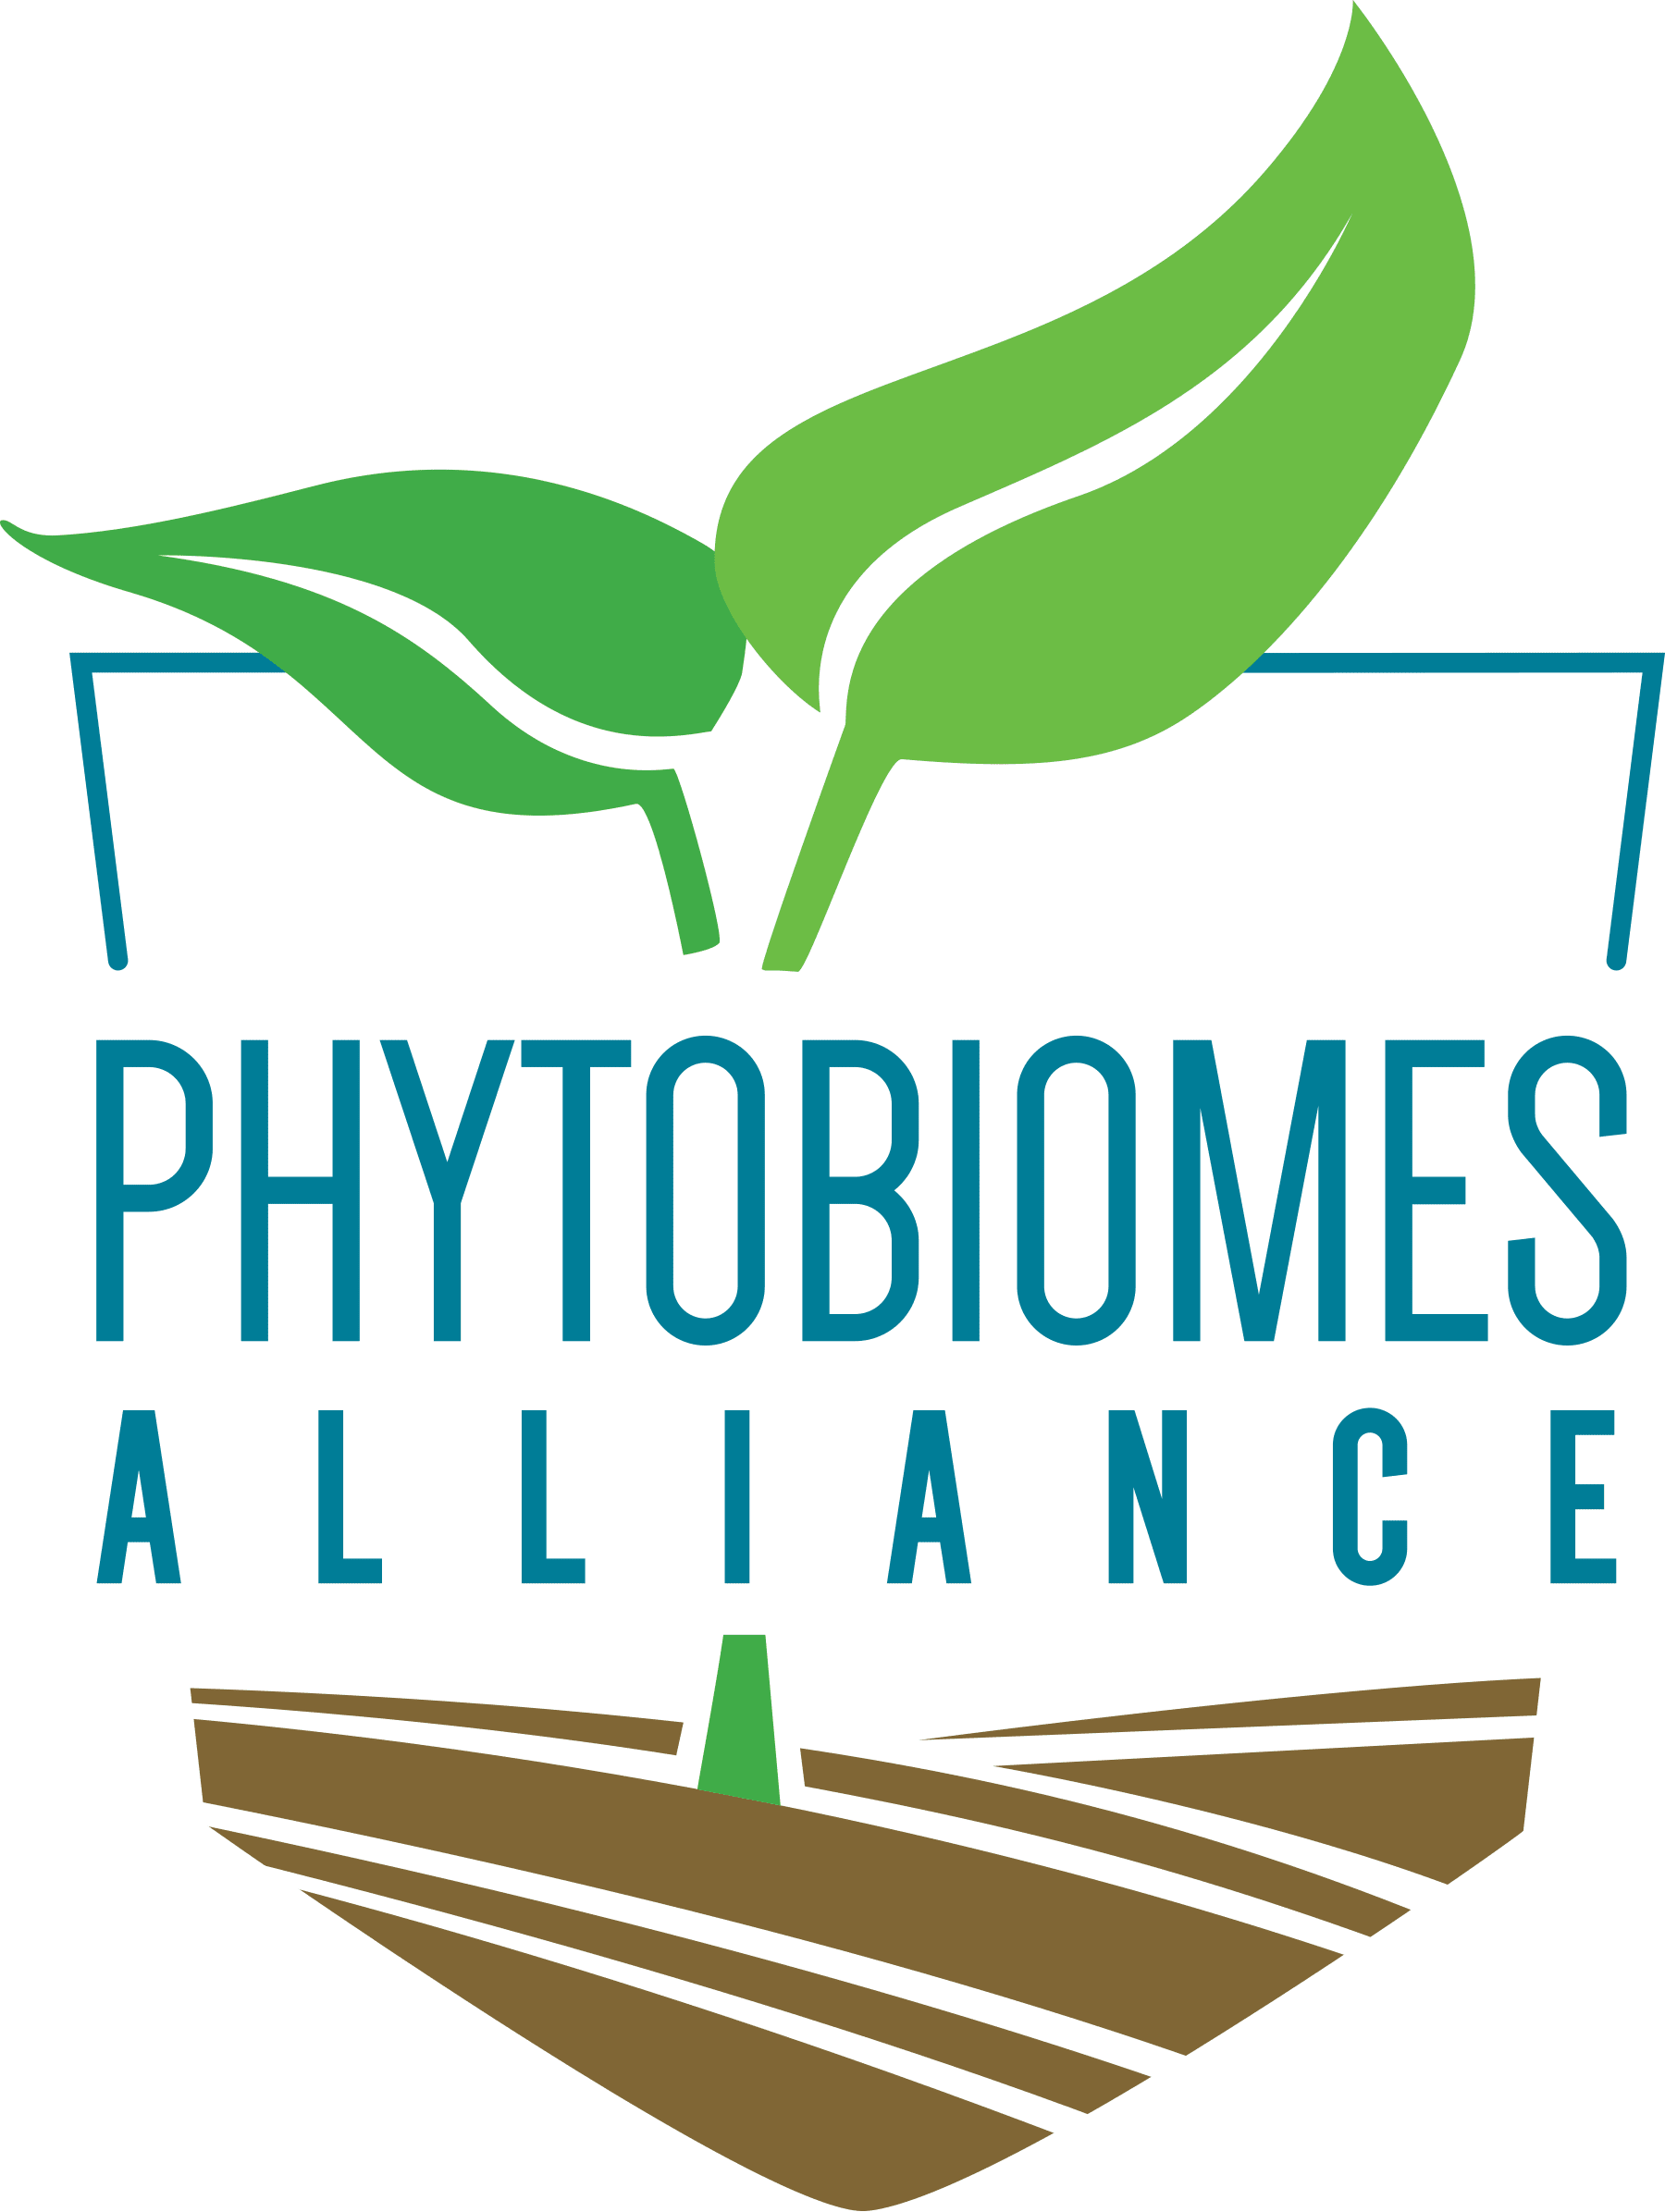 Phytobiomes-Alliance Logo_color (original)